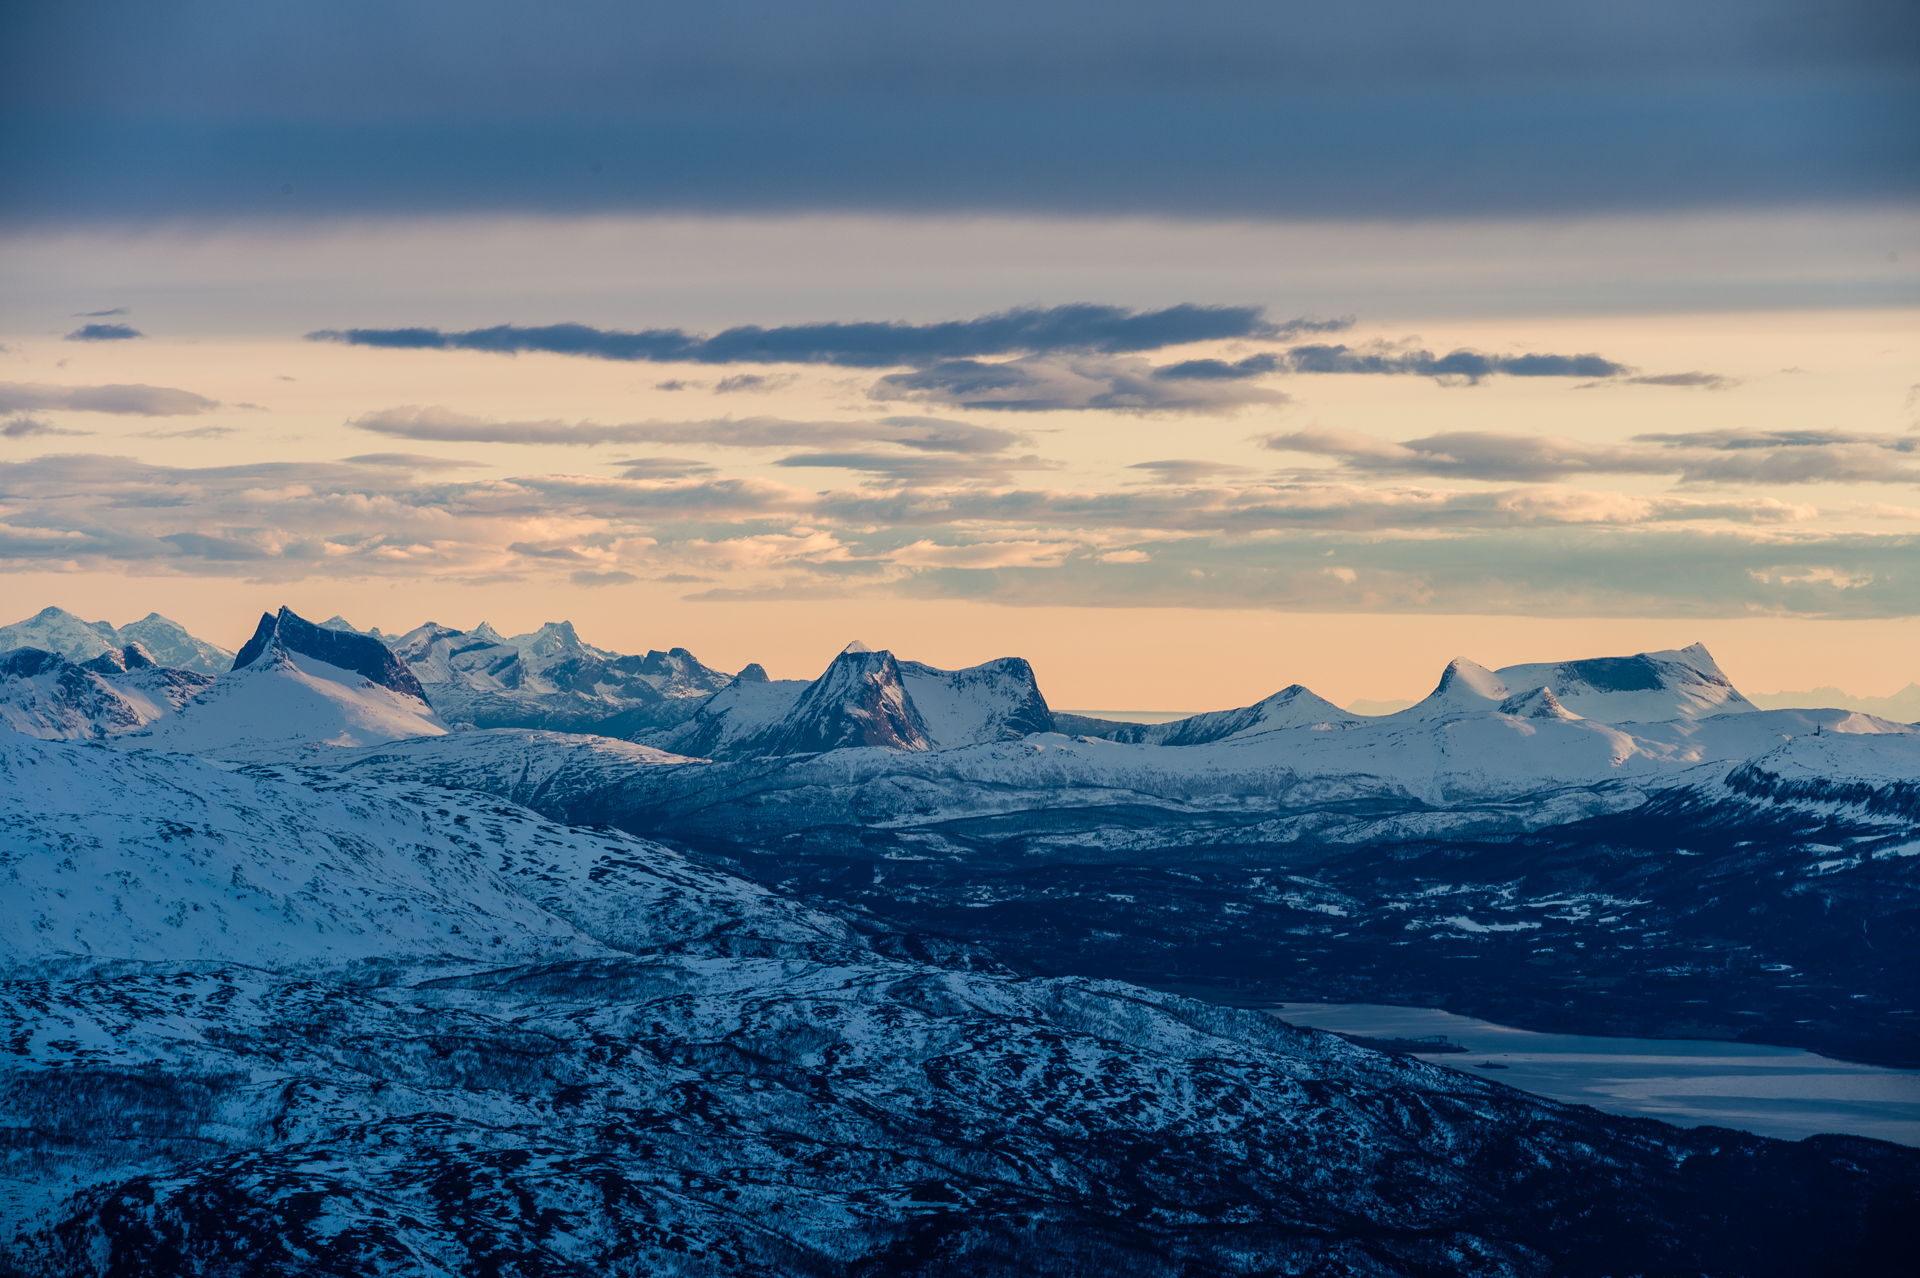 Between the fjords in northern Norway are isthmi  full of rarely skied snow-covered peaks.